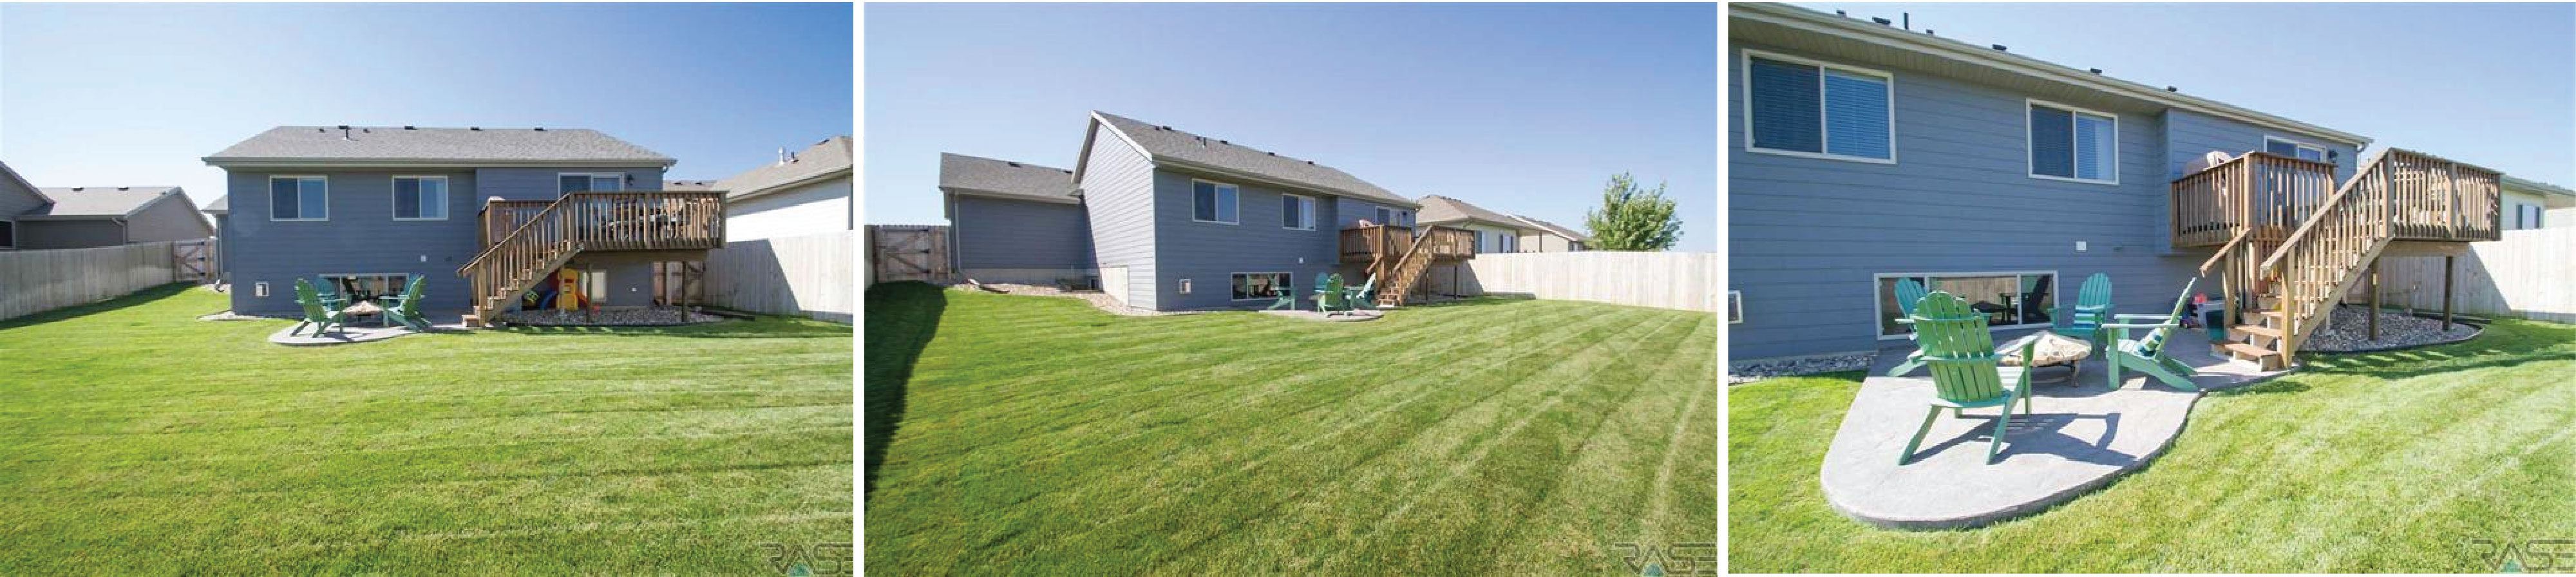 price reduced on this west side home